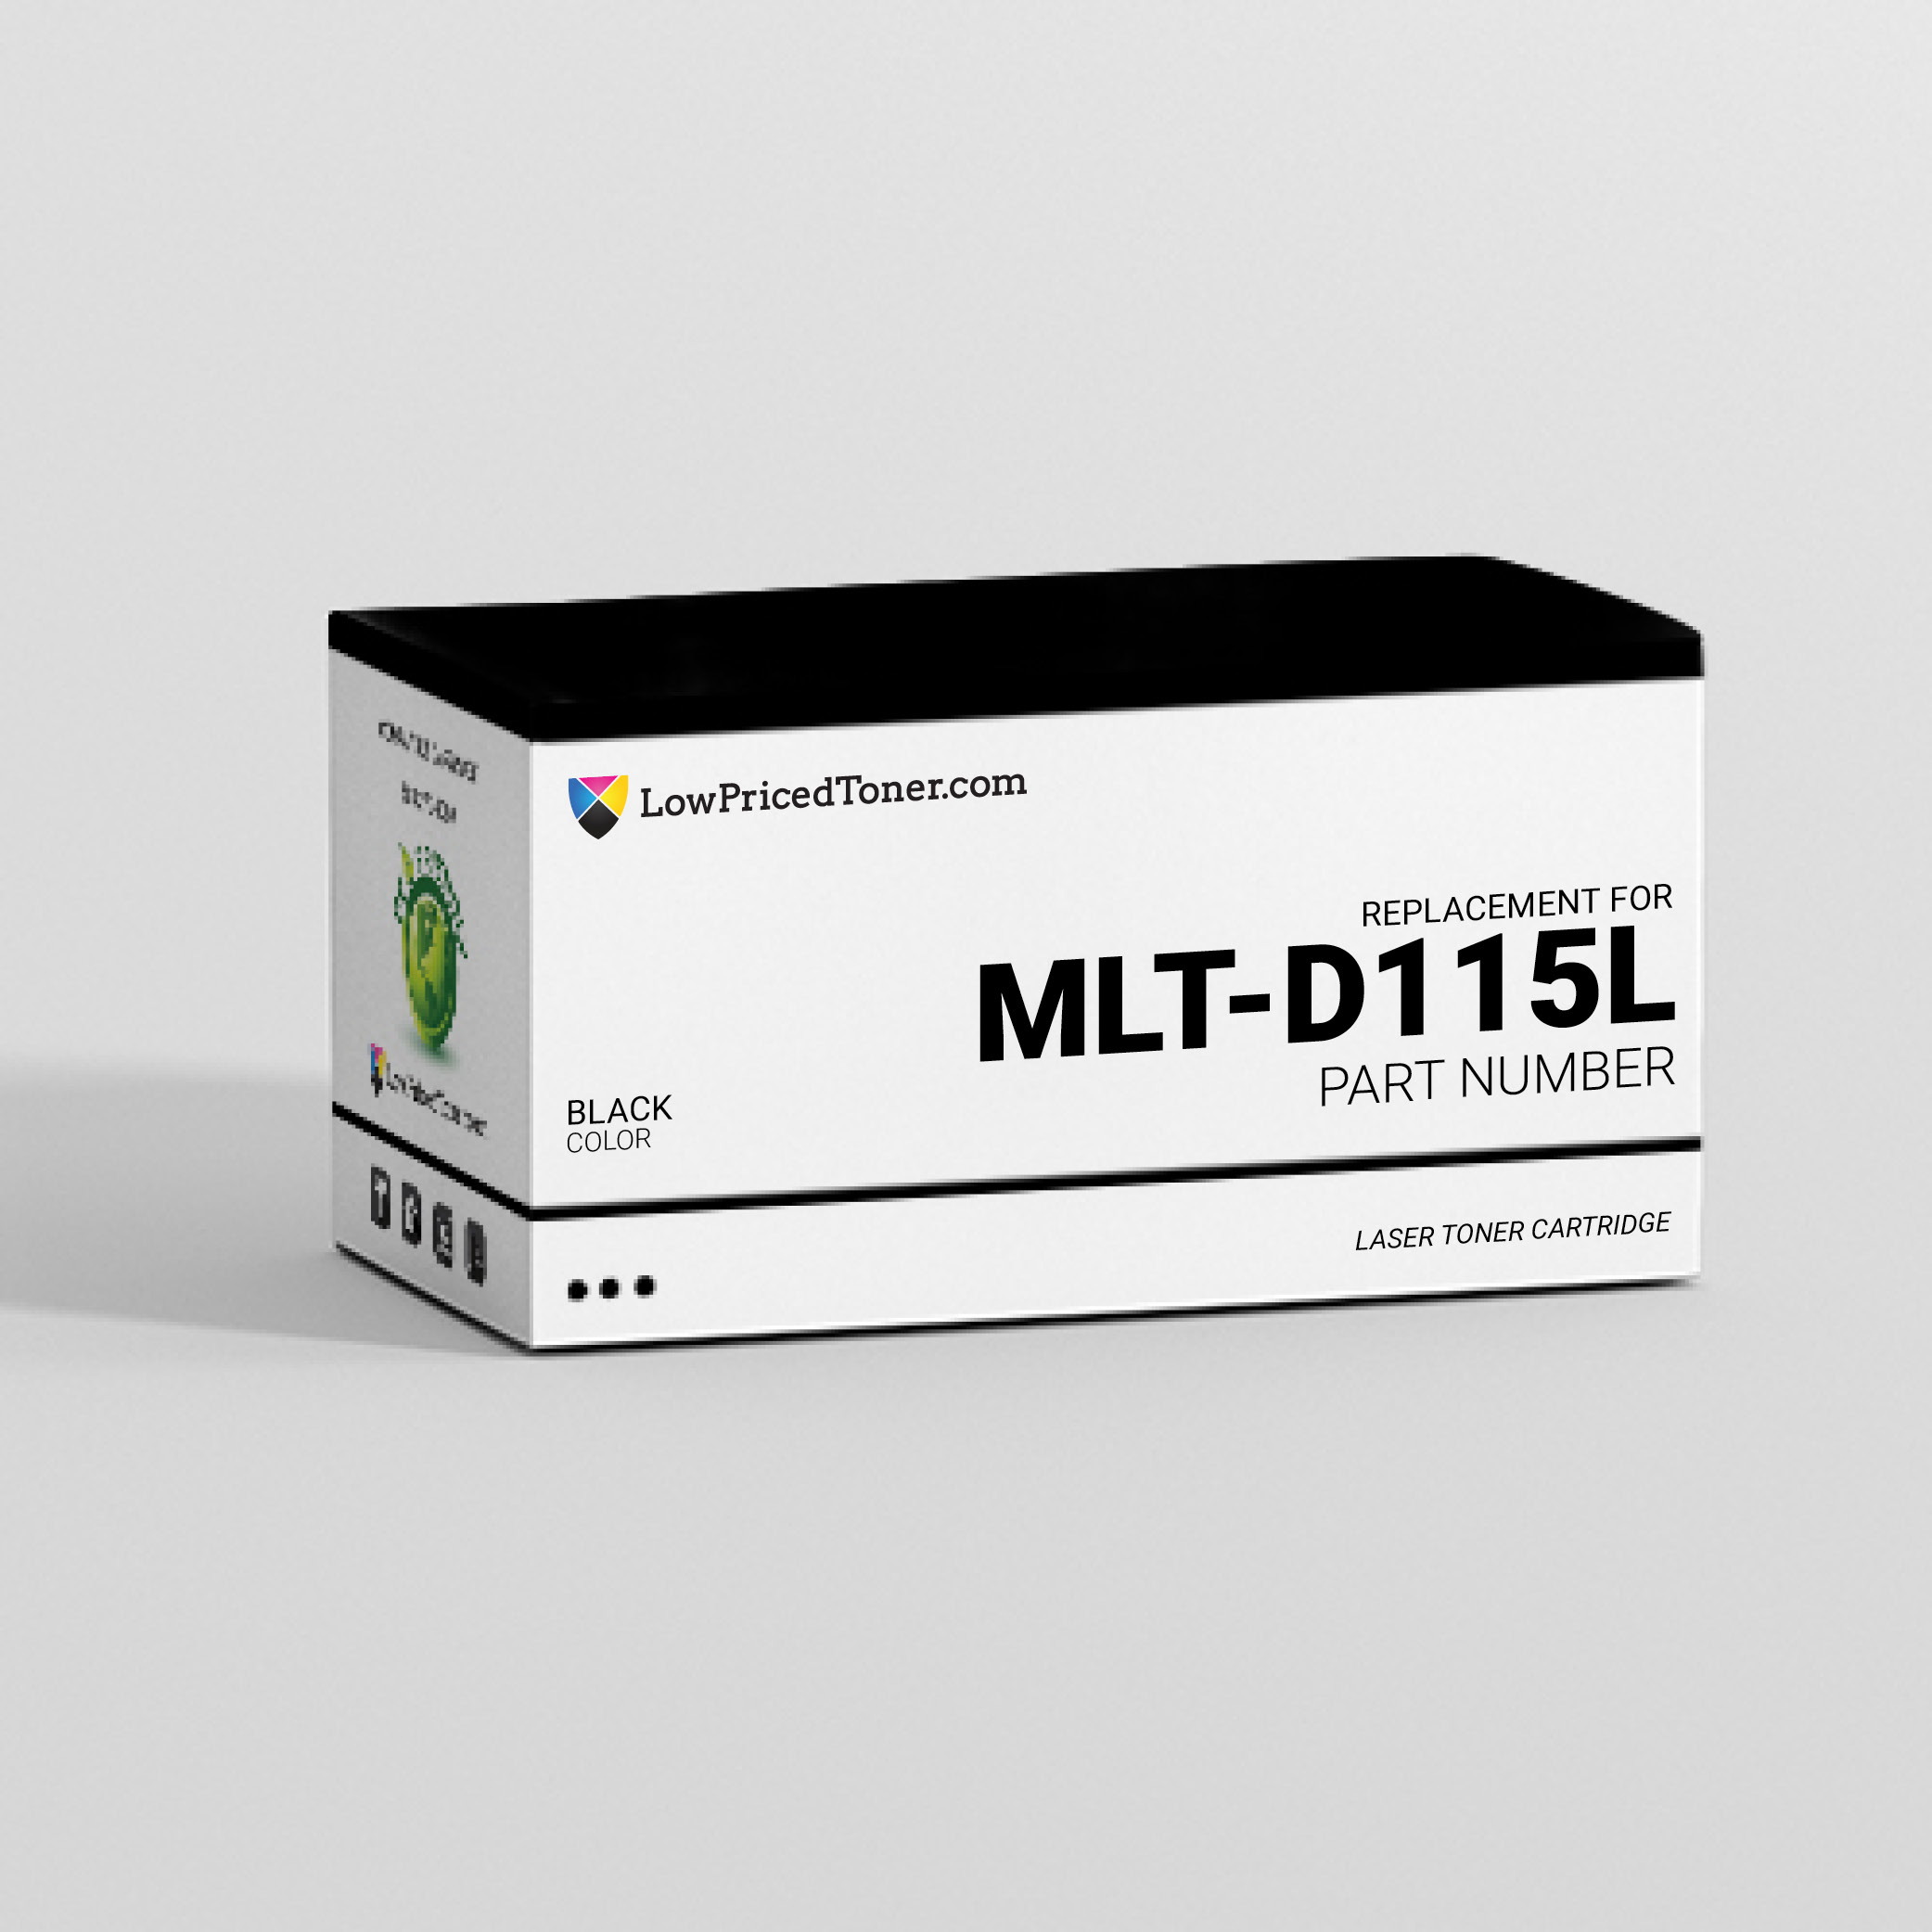 Samsung MLT-D115L Compatible Black Laser Toner Cartridge